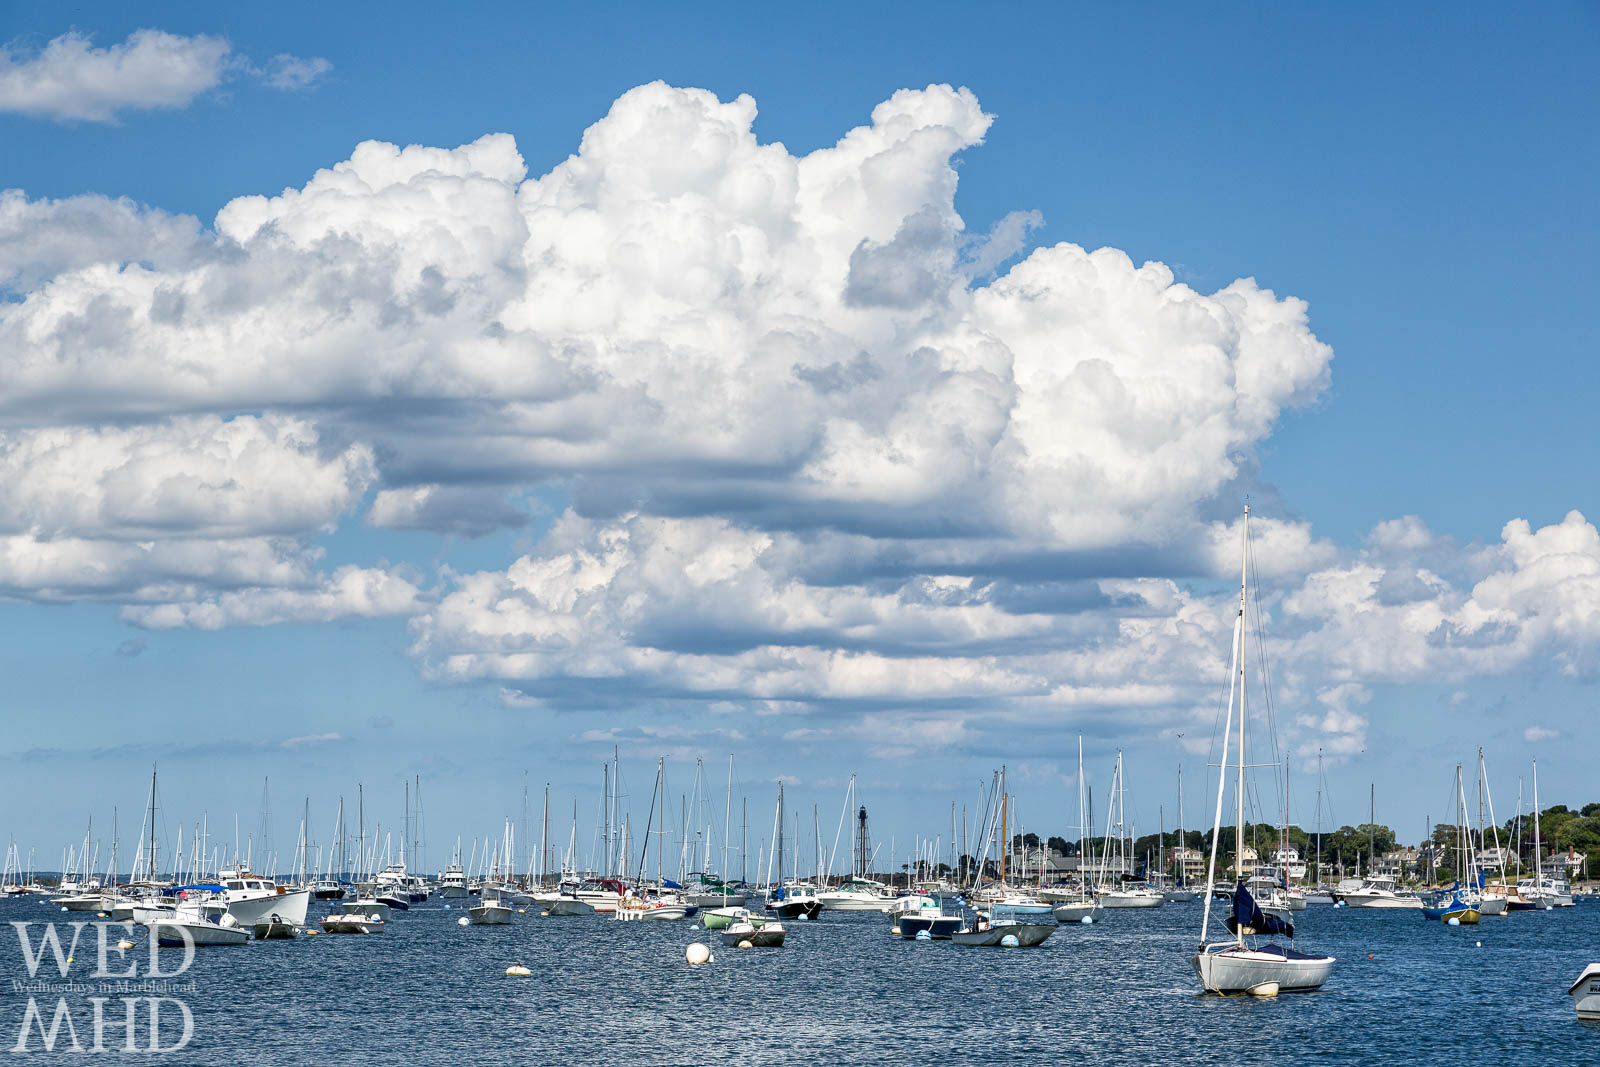 The warmth of Summer in Marblehead is captured with the clouds in the sky and boats in the harbor on this early August afternoon